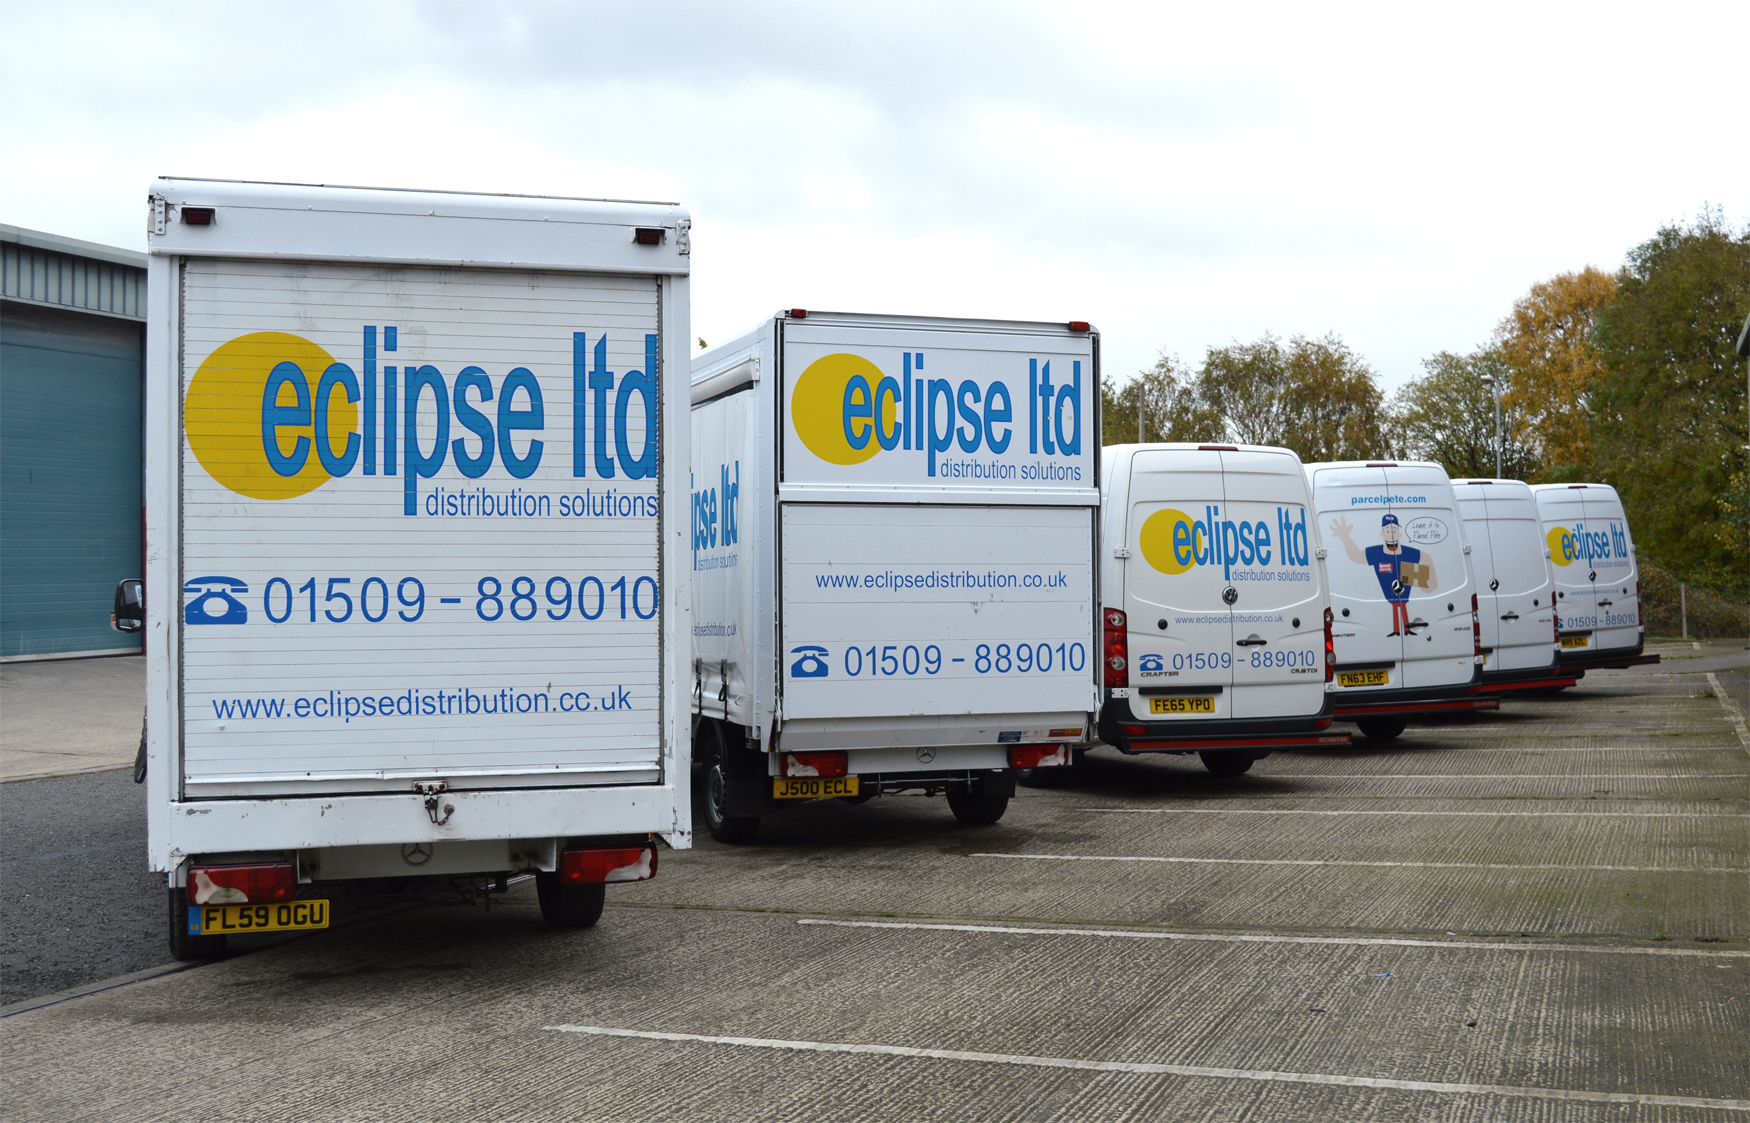 An image showing the rear view of a fleet of Eclipse Distribution Solutions Ltd vans and lorries in various sizes parked outside.